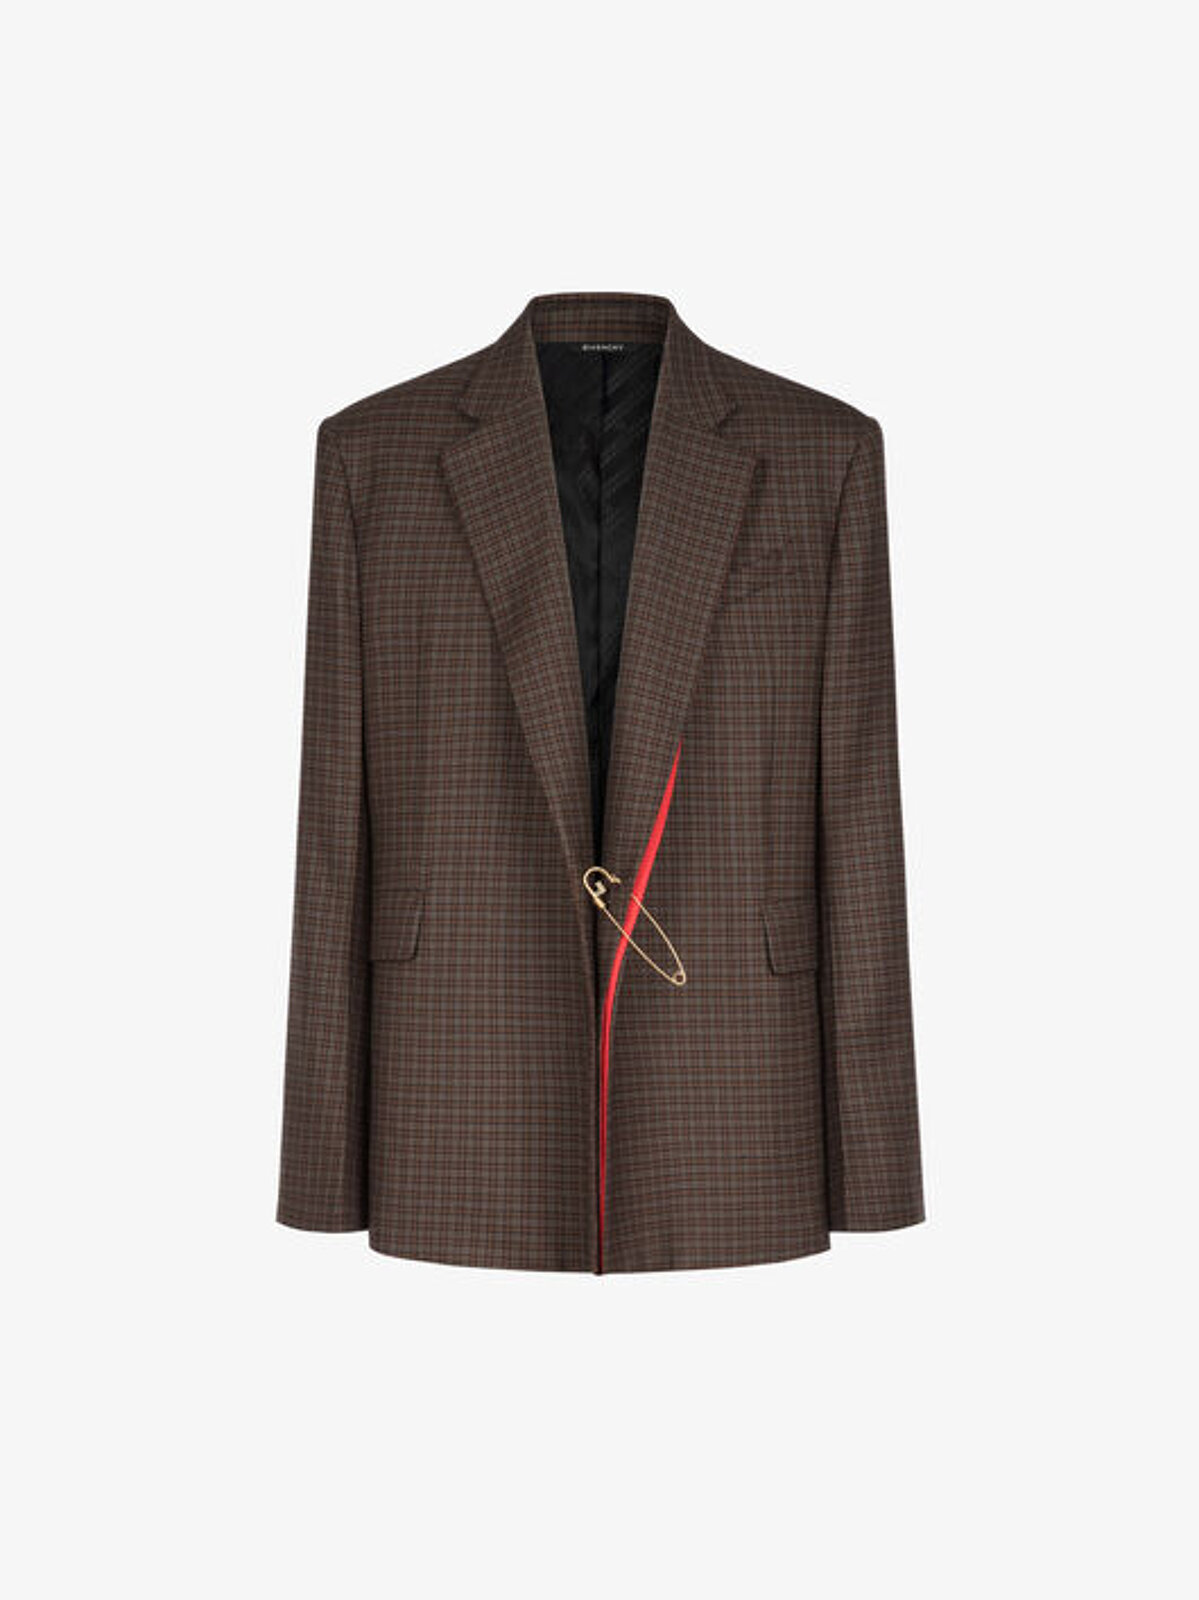 Checked jacket with contrasting details - Givenchy